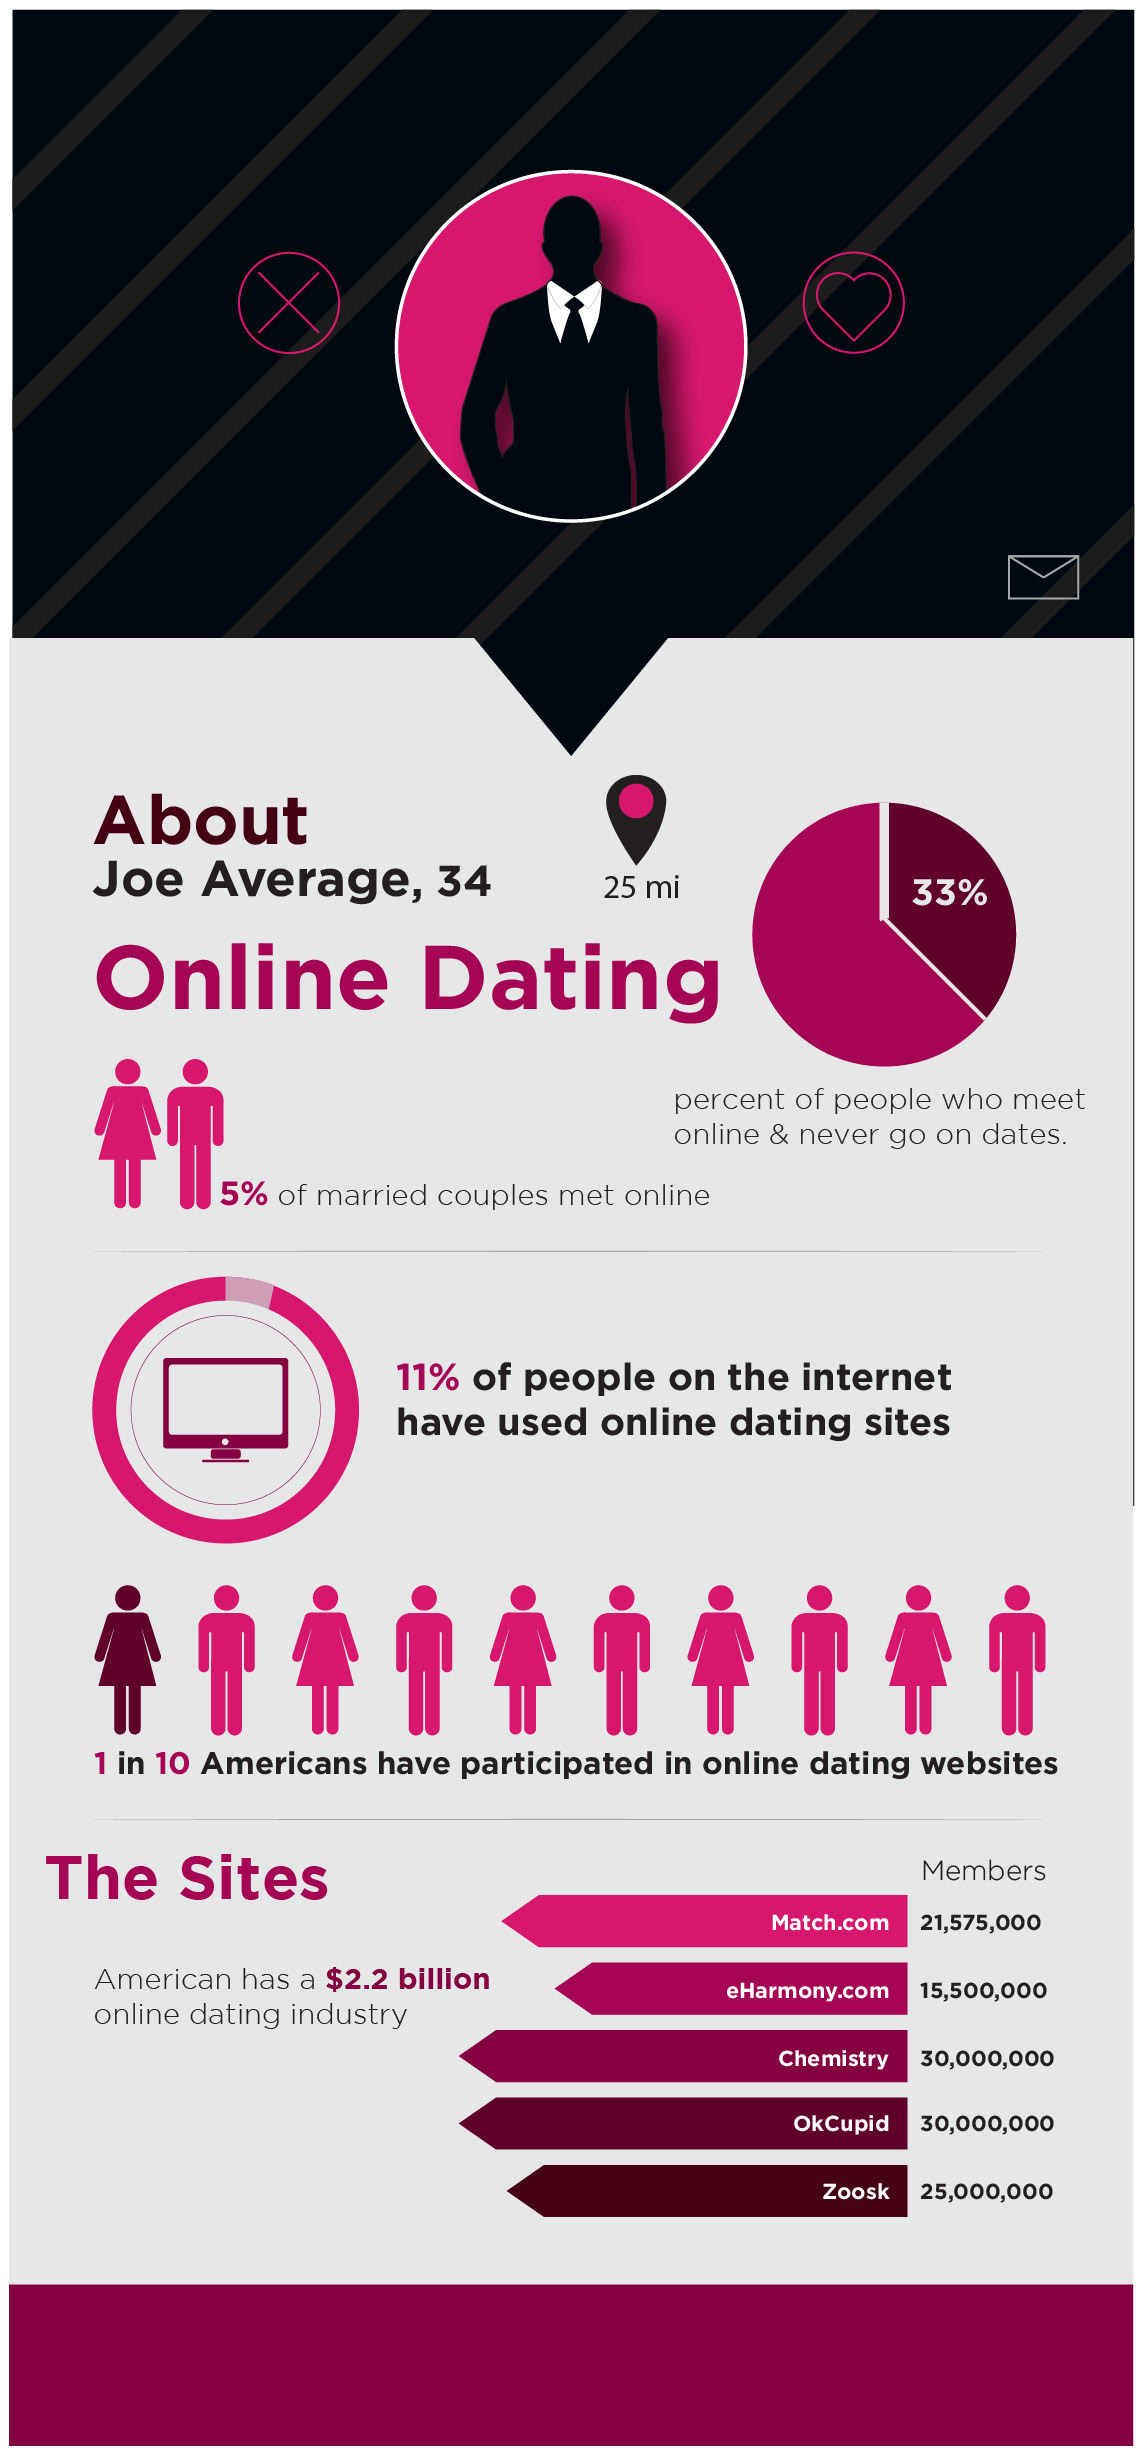 How much is the online dating industry worth